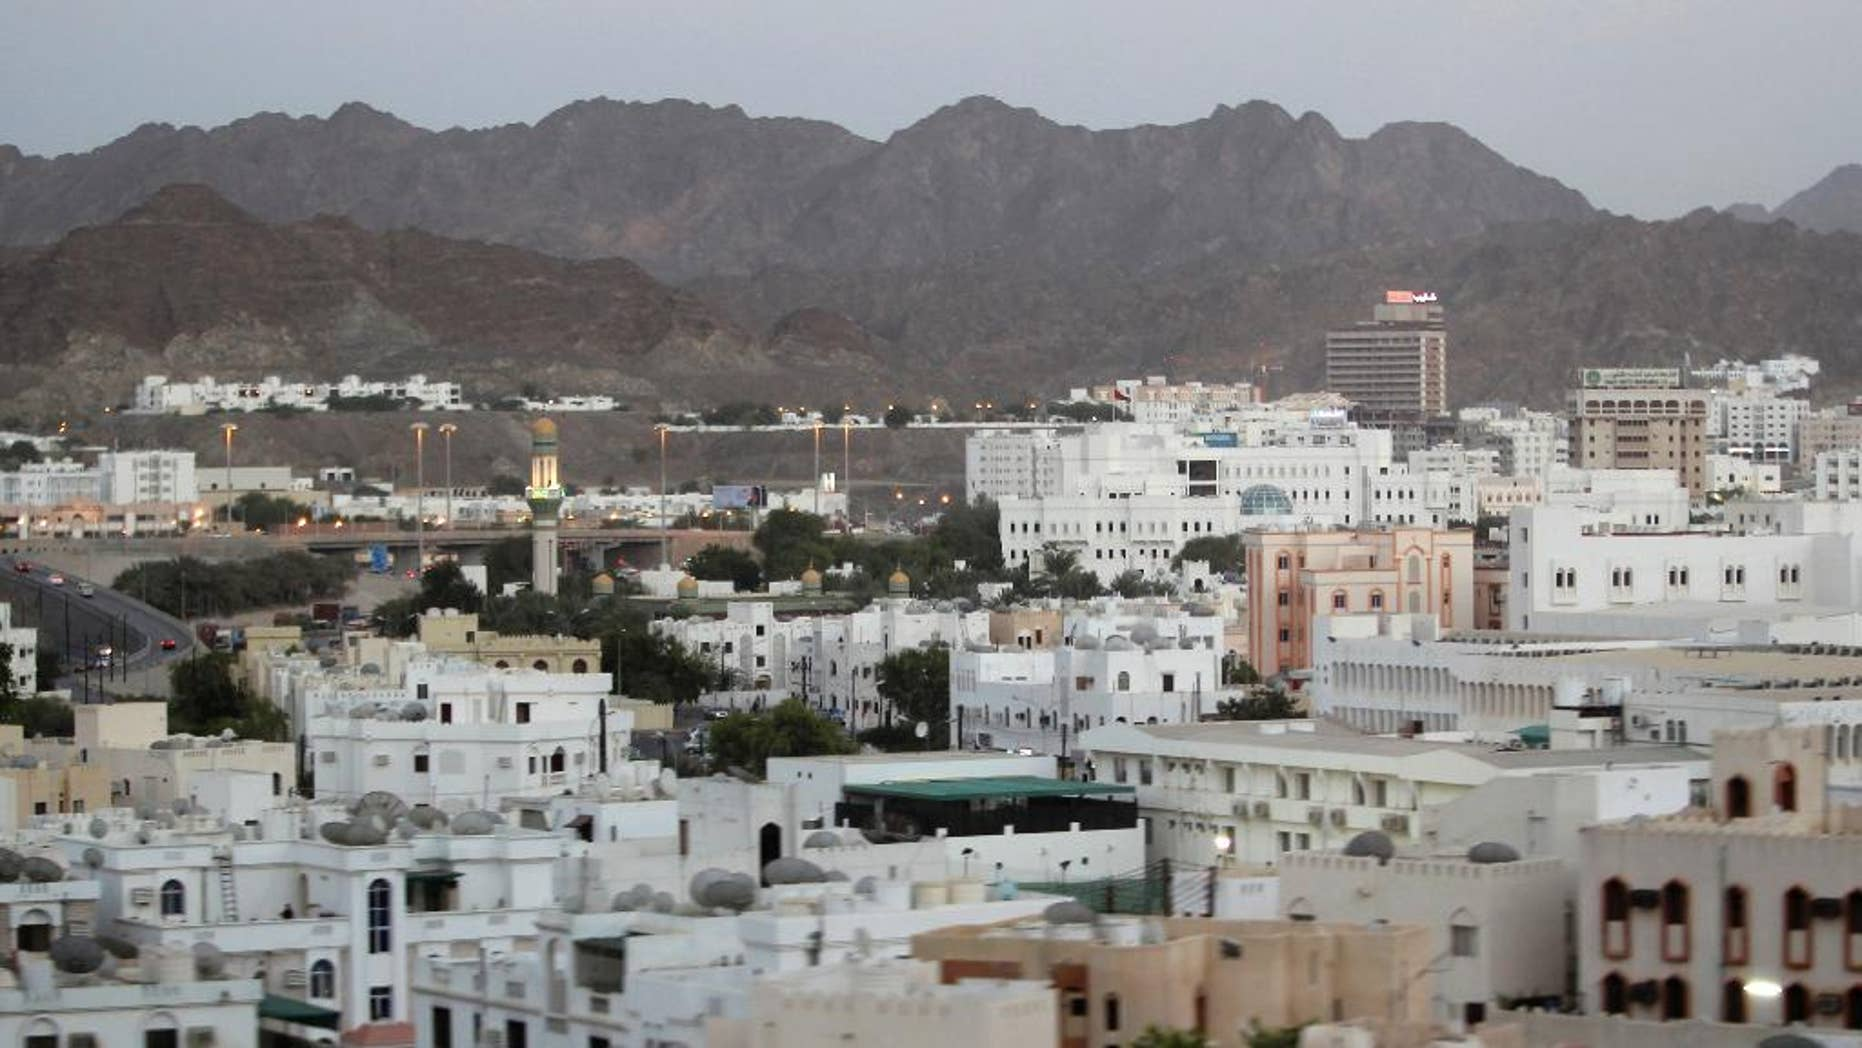 FILE -- In this Sept. 15, 2010 file photo shows a general view of the city, in Muscat, Oman. A new report released Wednesday, July 13, 2016 by Human Rights Watch alleges that foreign maids working in Oman face abuse and conditions that near slavery. The report, based on interviews its researchers conducted with 59 female migrant workers in the sultanate, said some recounted being beaten, verbally abused, denied fair pay and working as much as 20-hour days. (AP Photo/Kamran Jebreili, File)